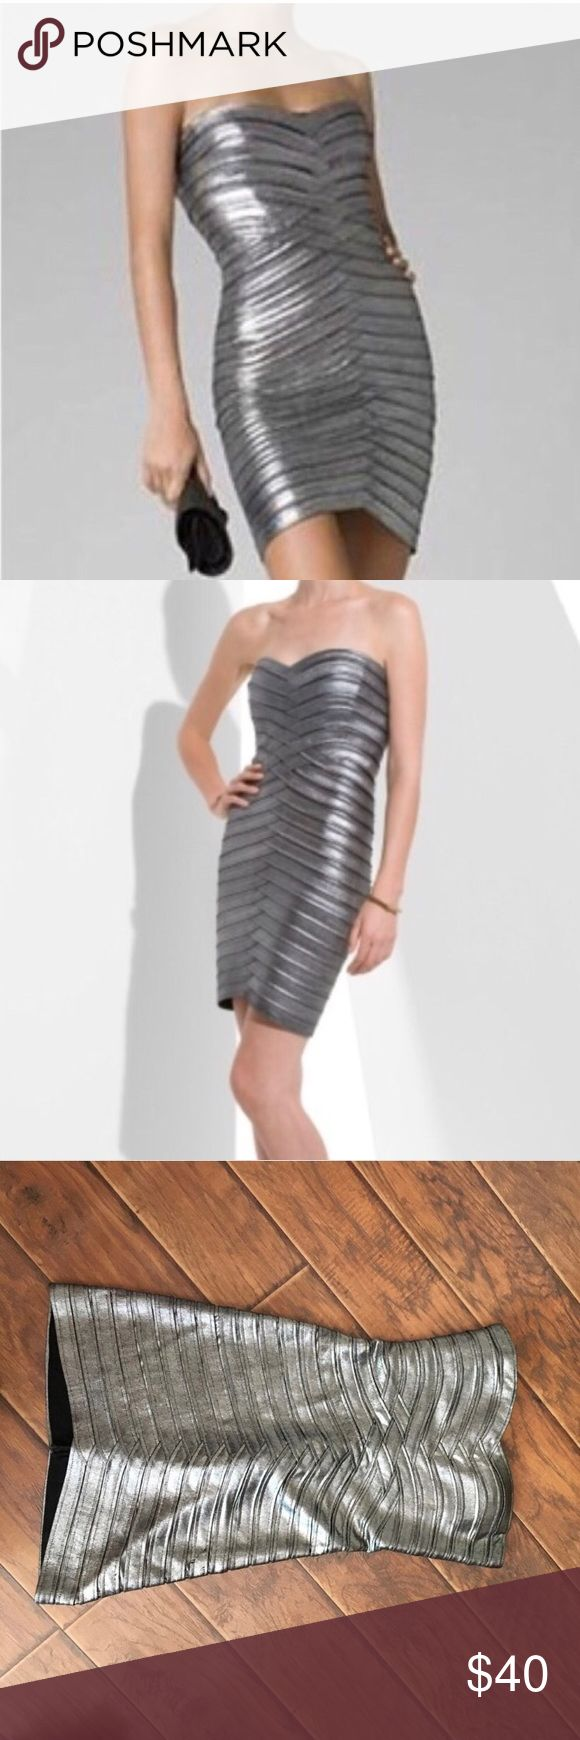 BCBG Silver Bodycon Dress Only worn once! It is extremely flattering because the material is so thick. BCBG Dresses Mini